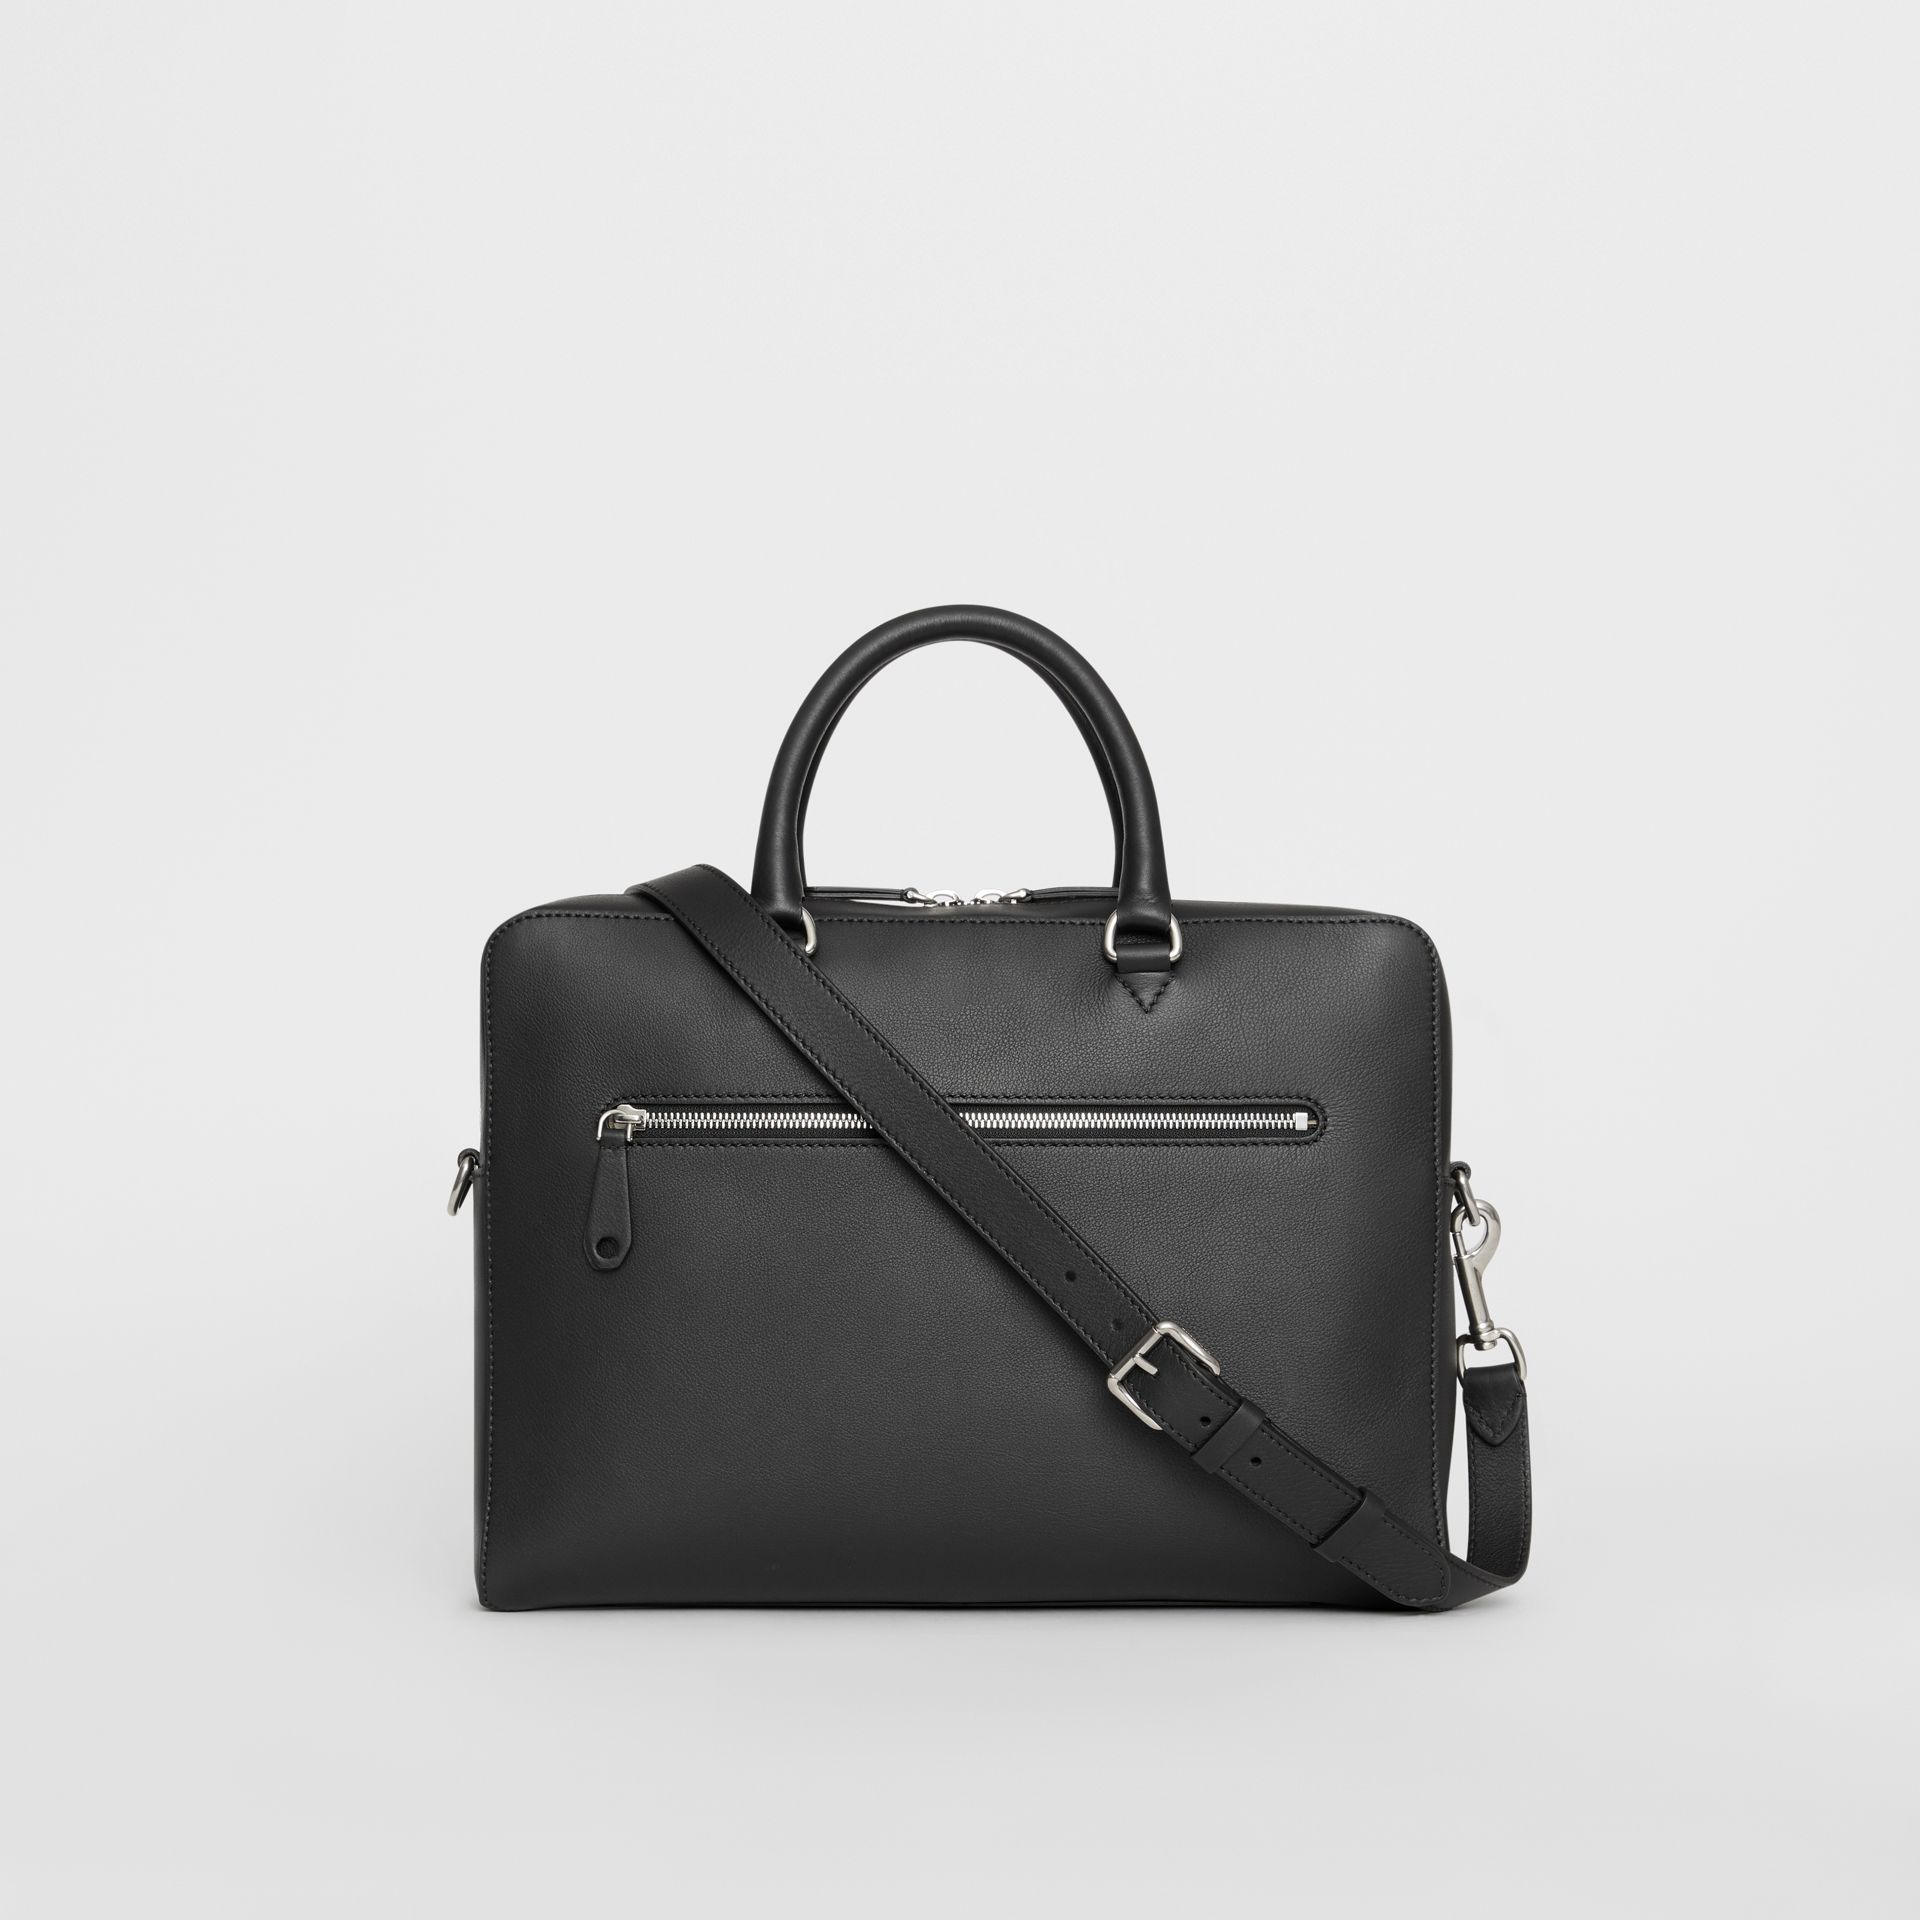 Attaché-case en cuir avec écusson estampé (Noir) - Homme | Burberry Canada - photo de la galerie 7